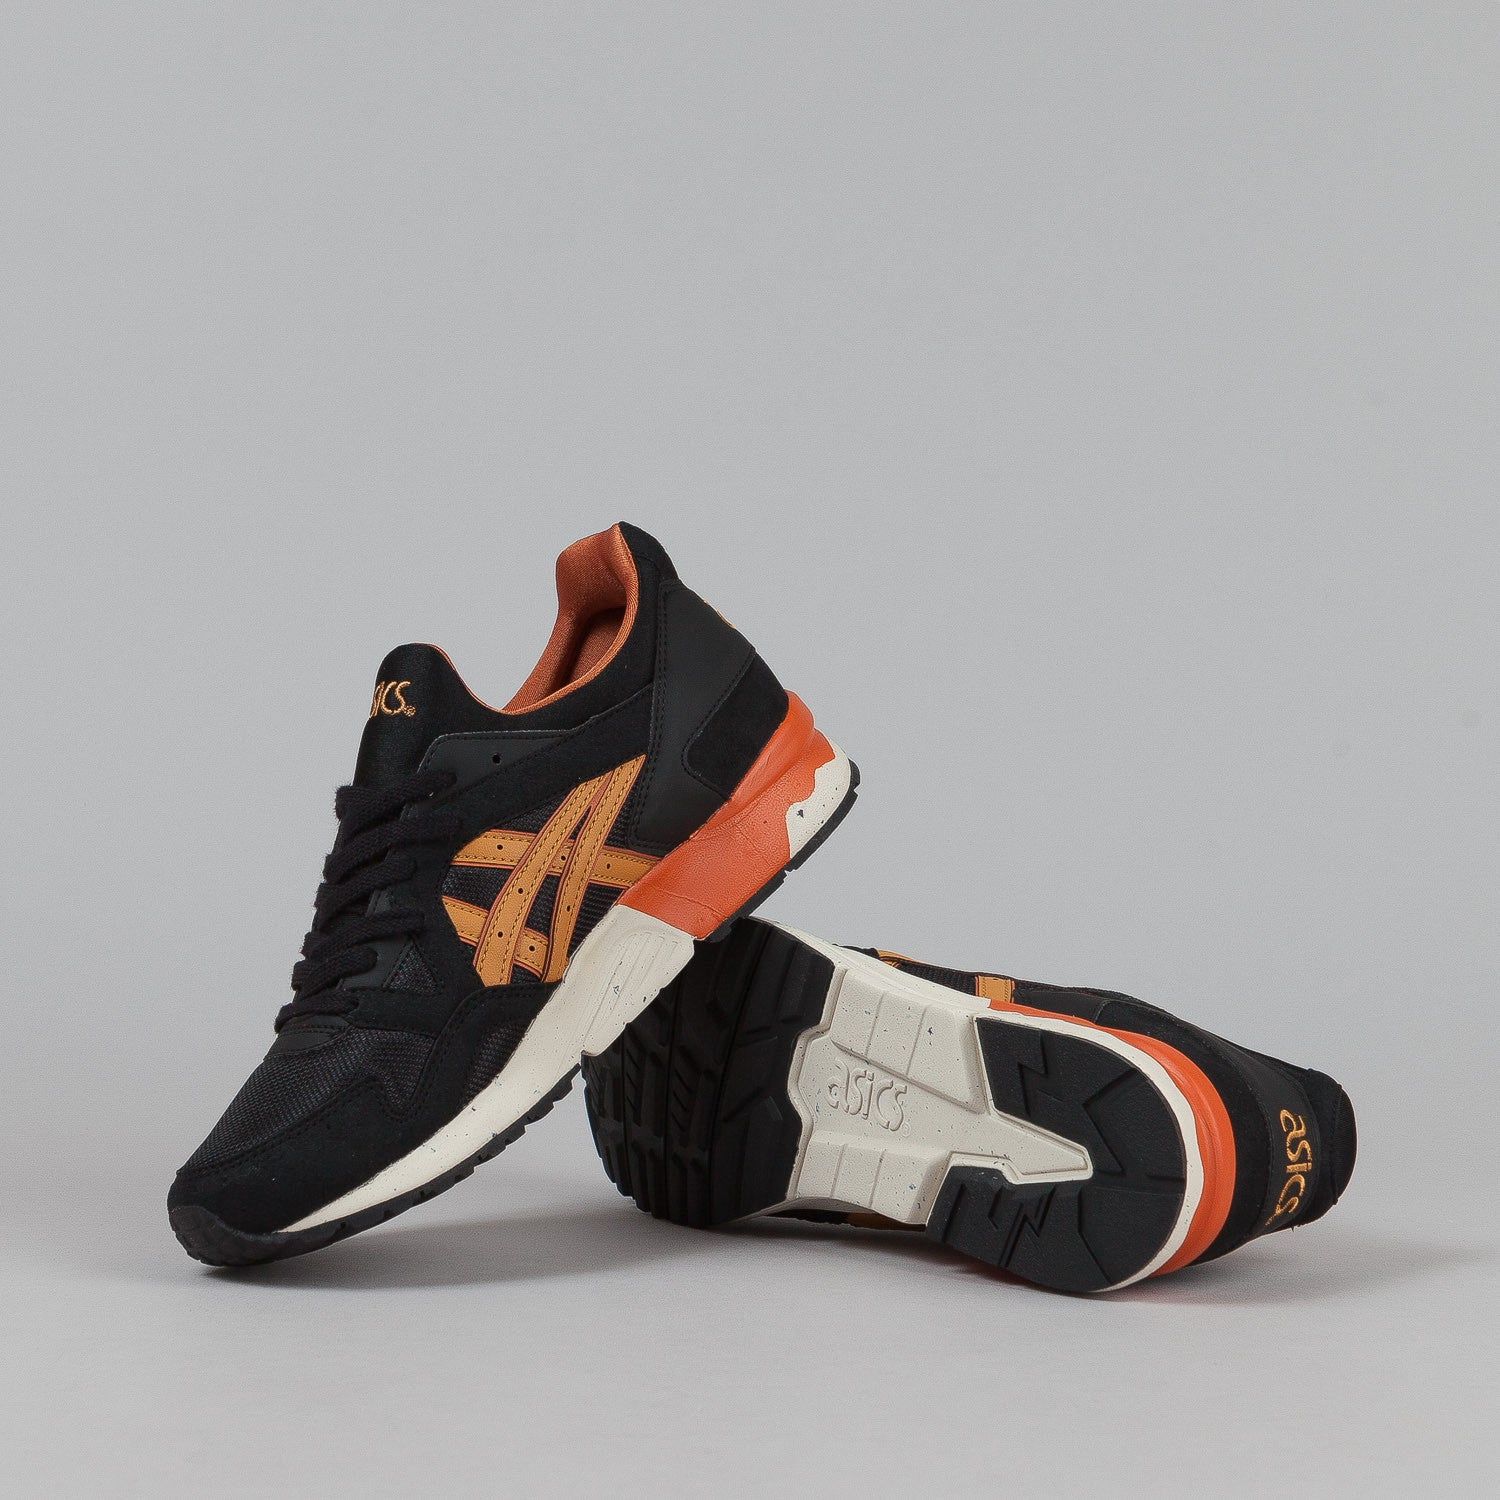 Asics Gel Lyte V Shoes - Black / Tan